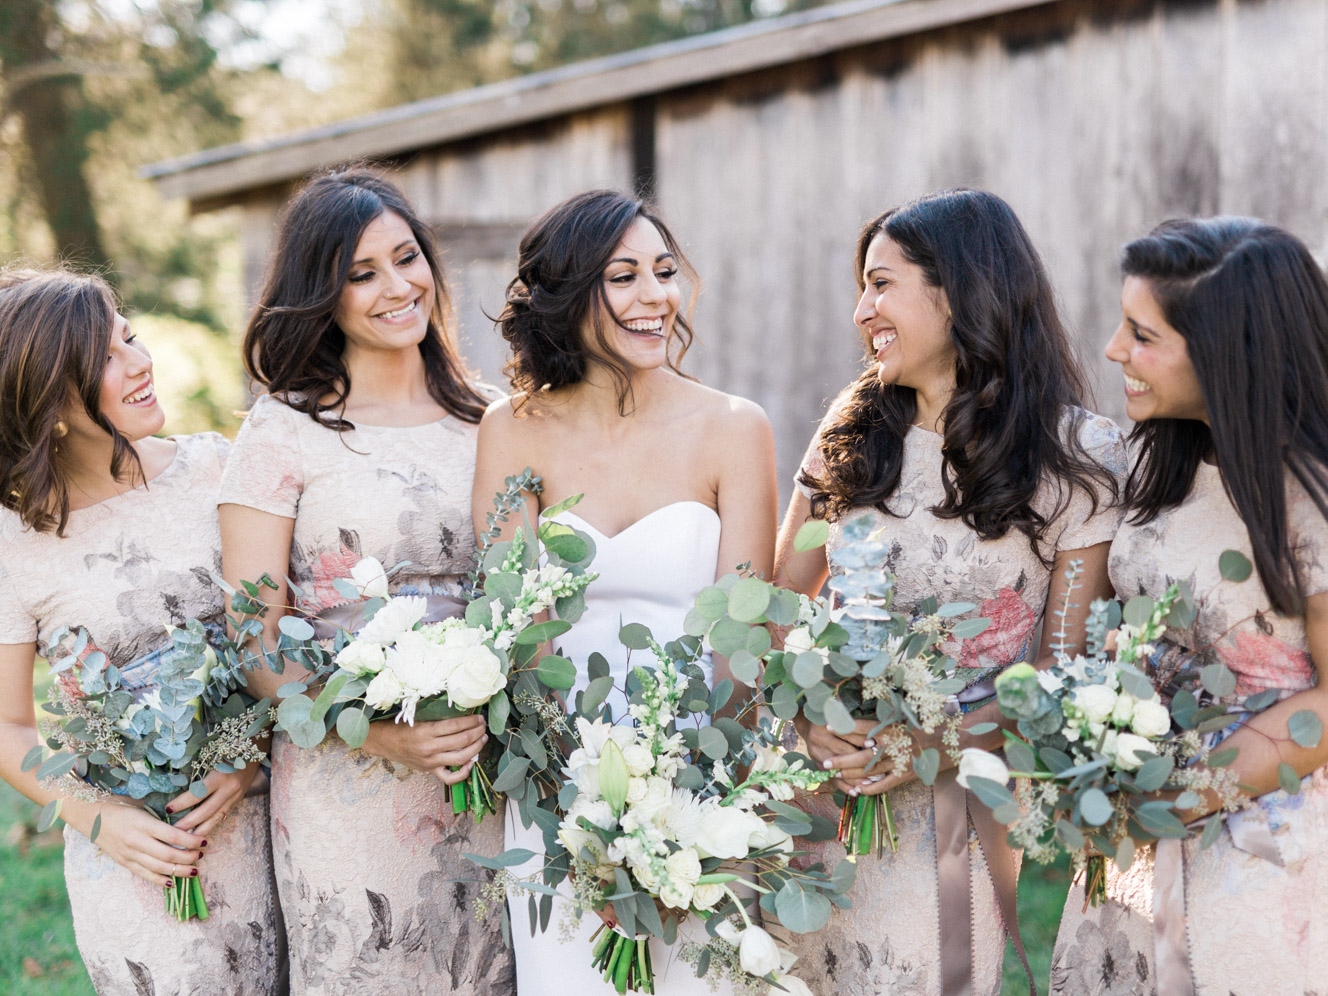 Bridesmaids in Floral Melinda BHLDN Dress | Bella Wedding Dress by Sarah Janks | Rustic Winter Wedding | Lynchburg, Virginia Film Photographer | kelseyandnate.com